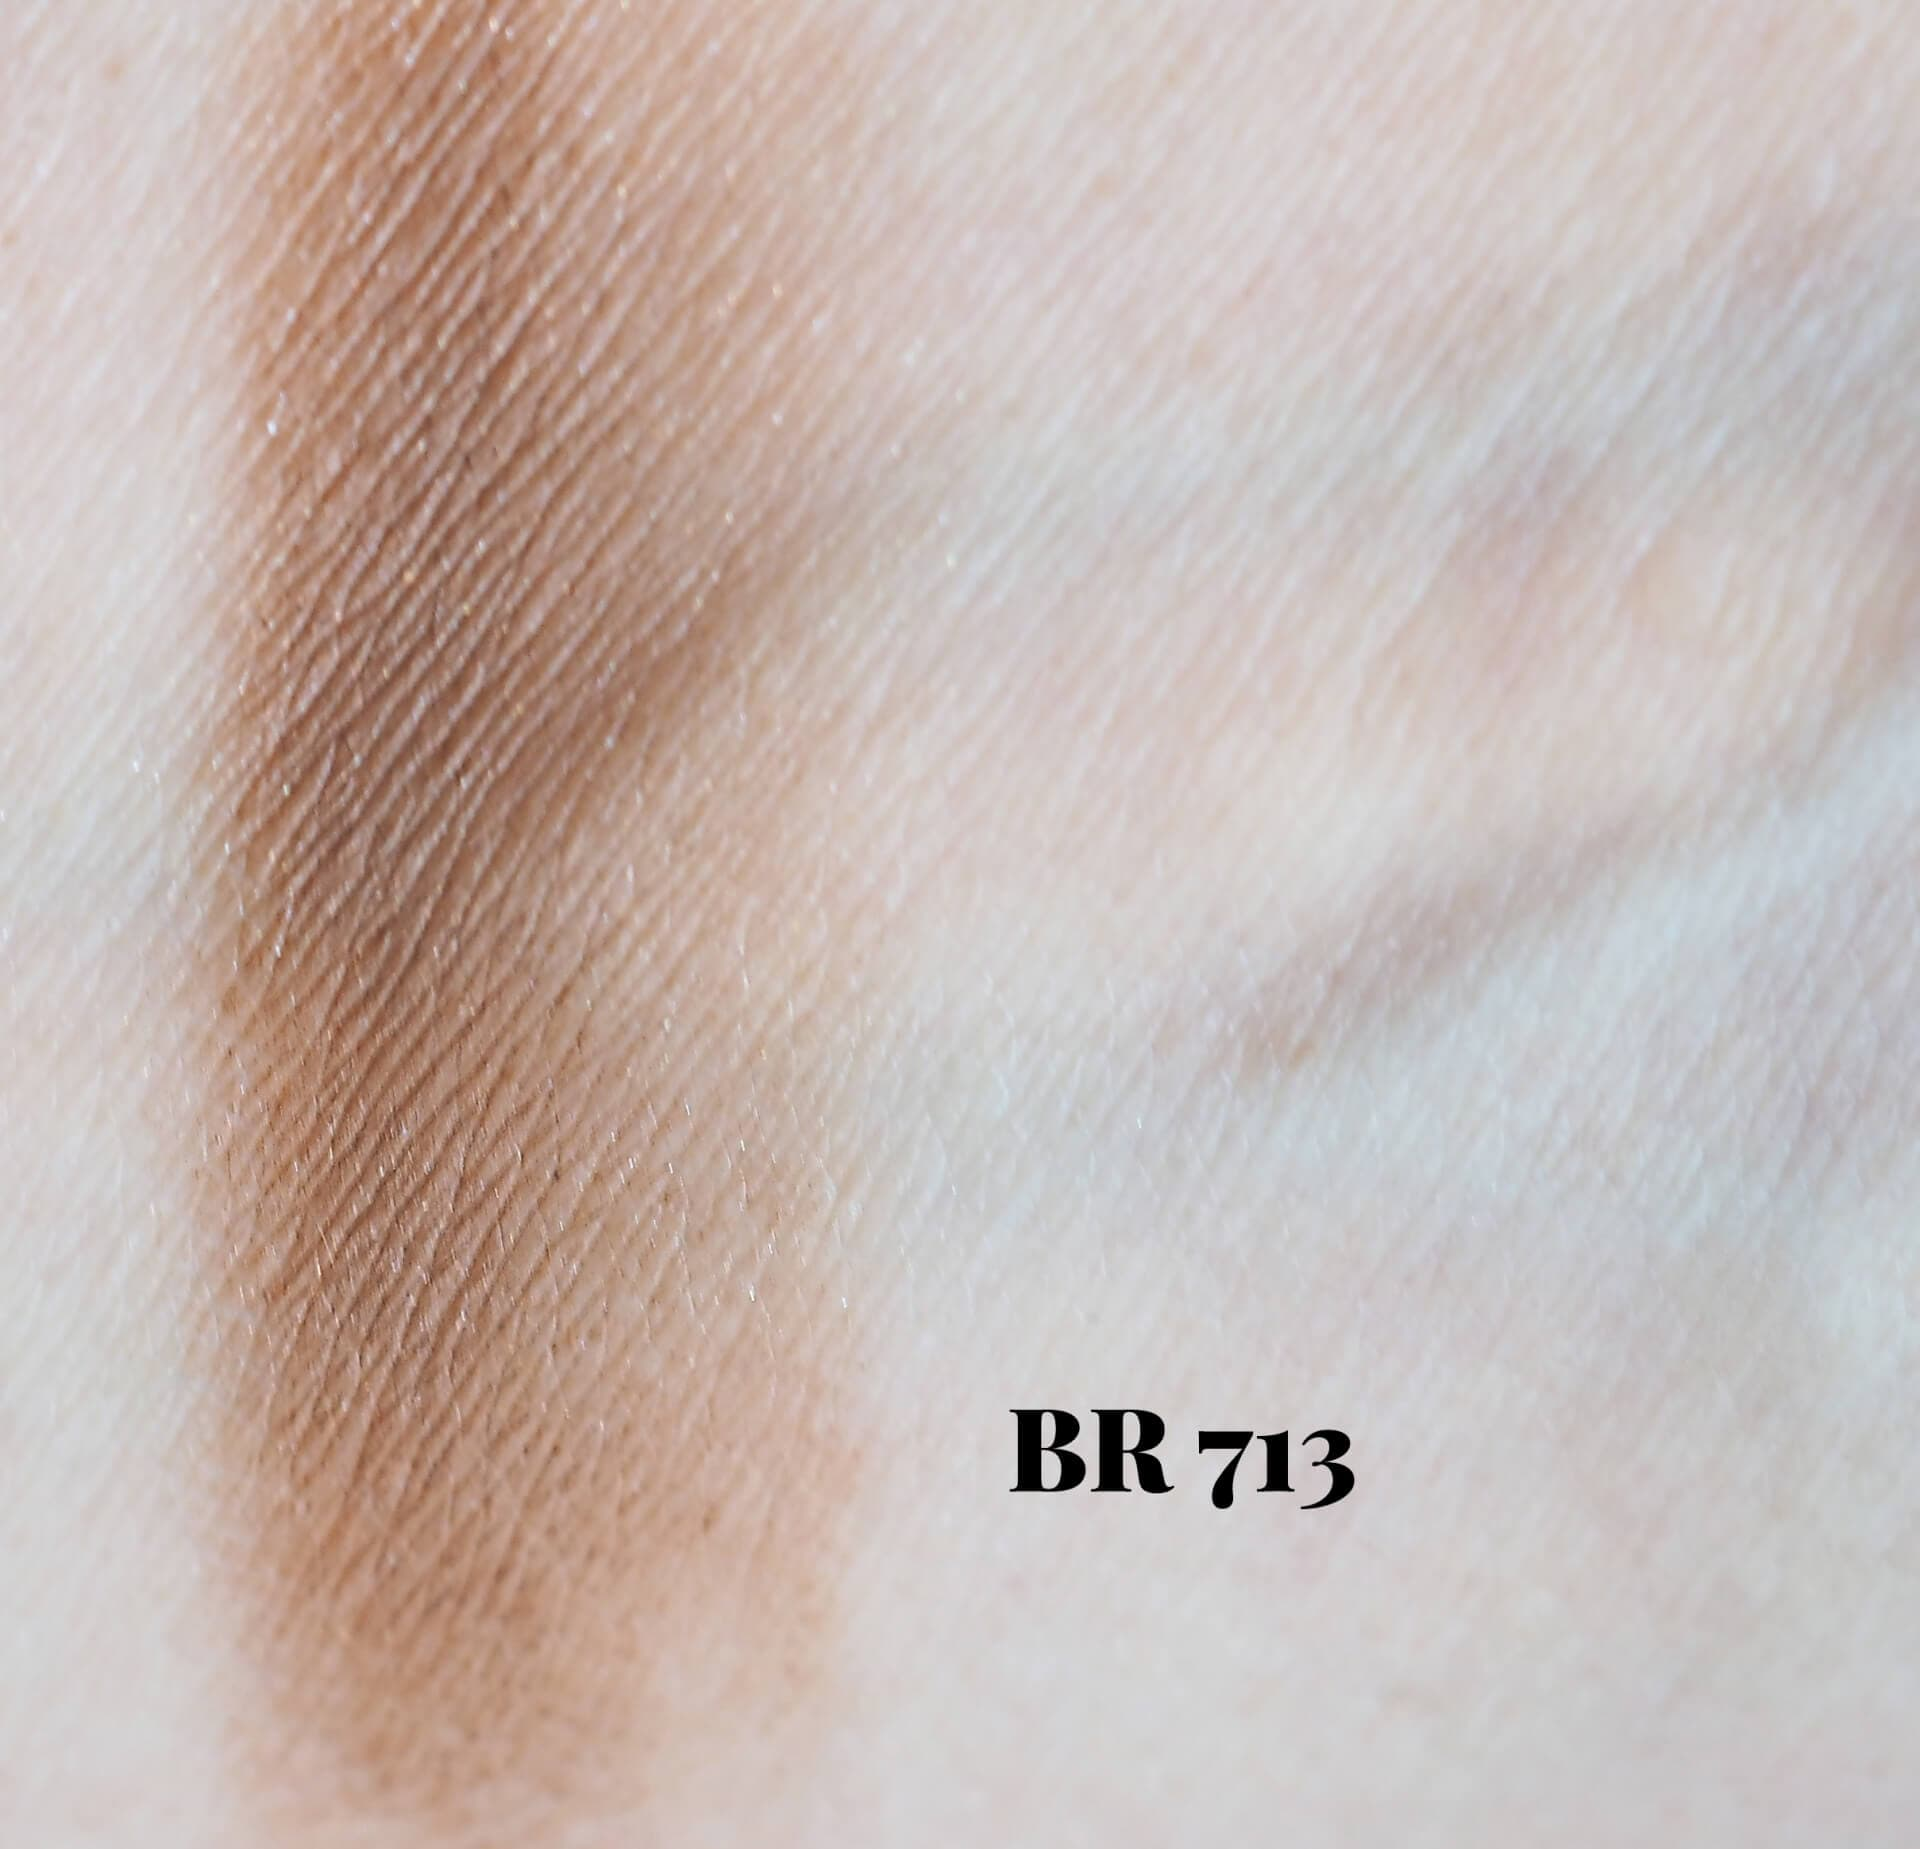 BR731 Kitsune Shimmering Cream Eye Color